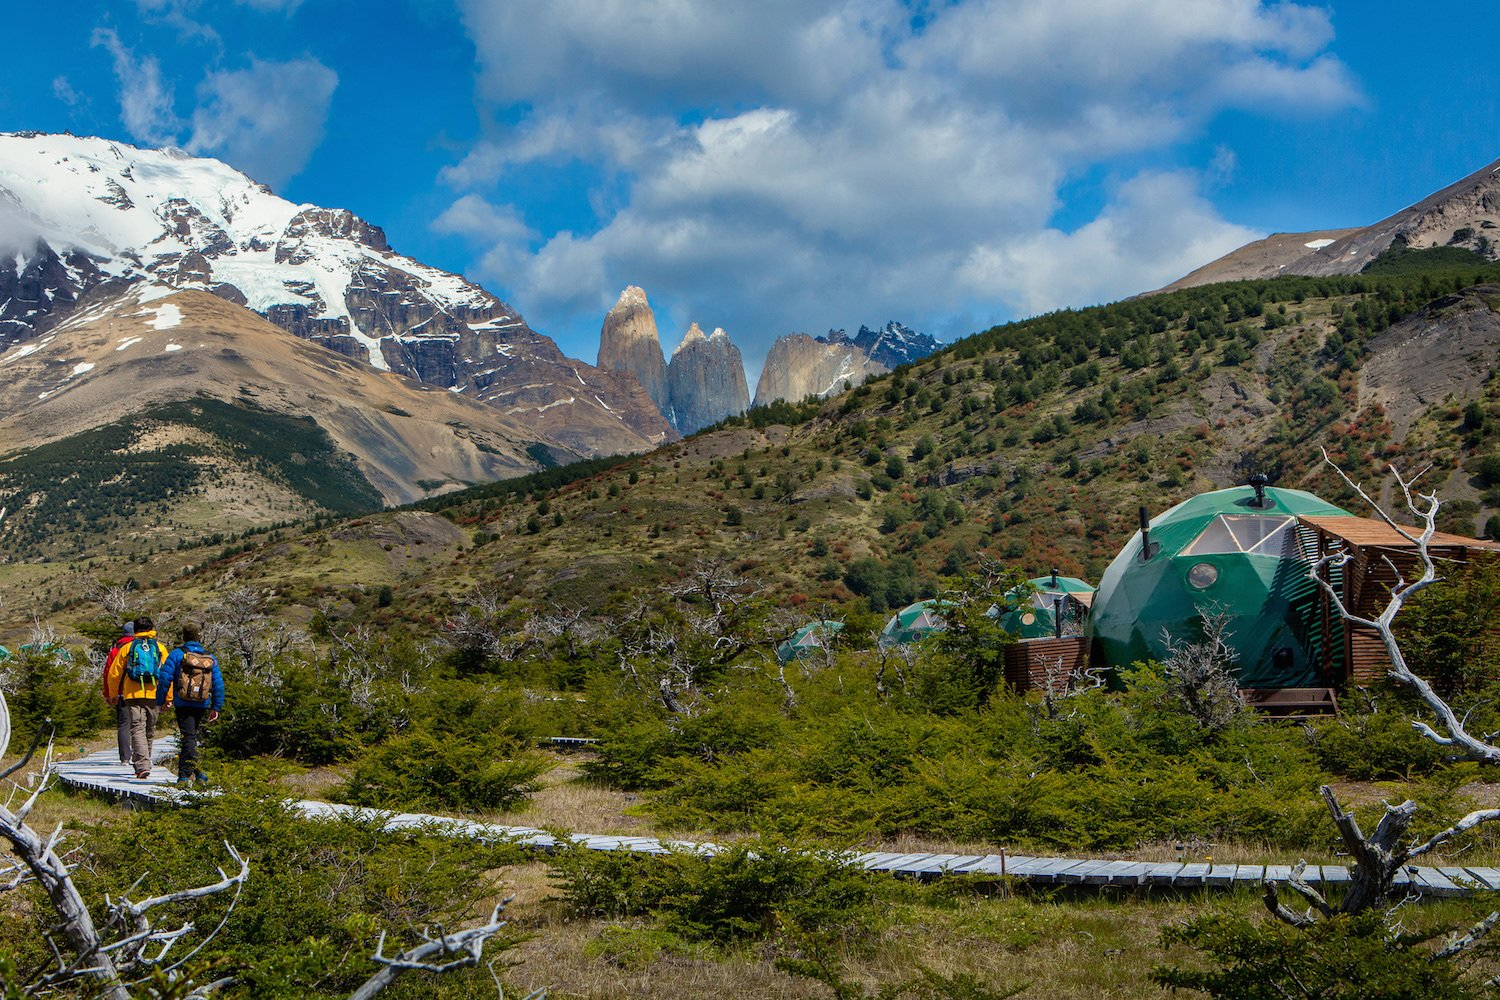 Outdoor, Shrubs, Slope, Field, Woodland, Boulders, Trees, and Walkways  Best Photos from Soak Up the Magic of Patagonia at This Eco-Friendly Geodesic Dome Retreat